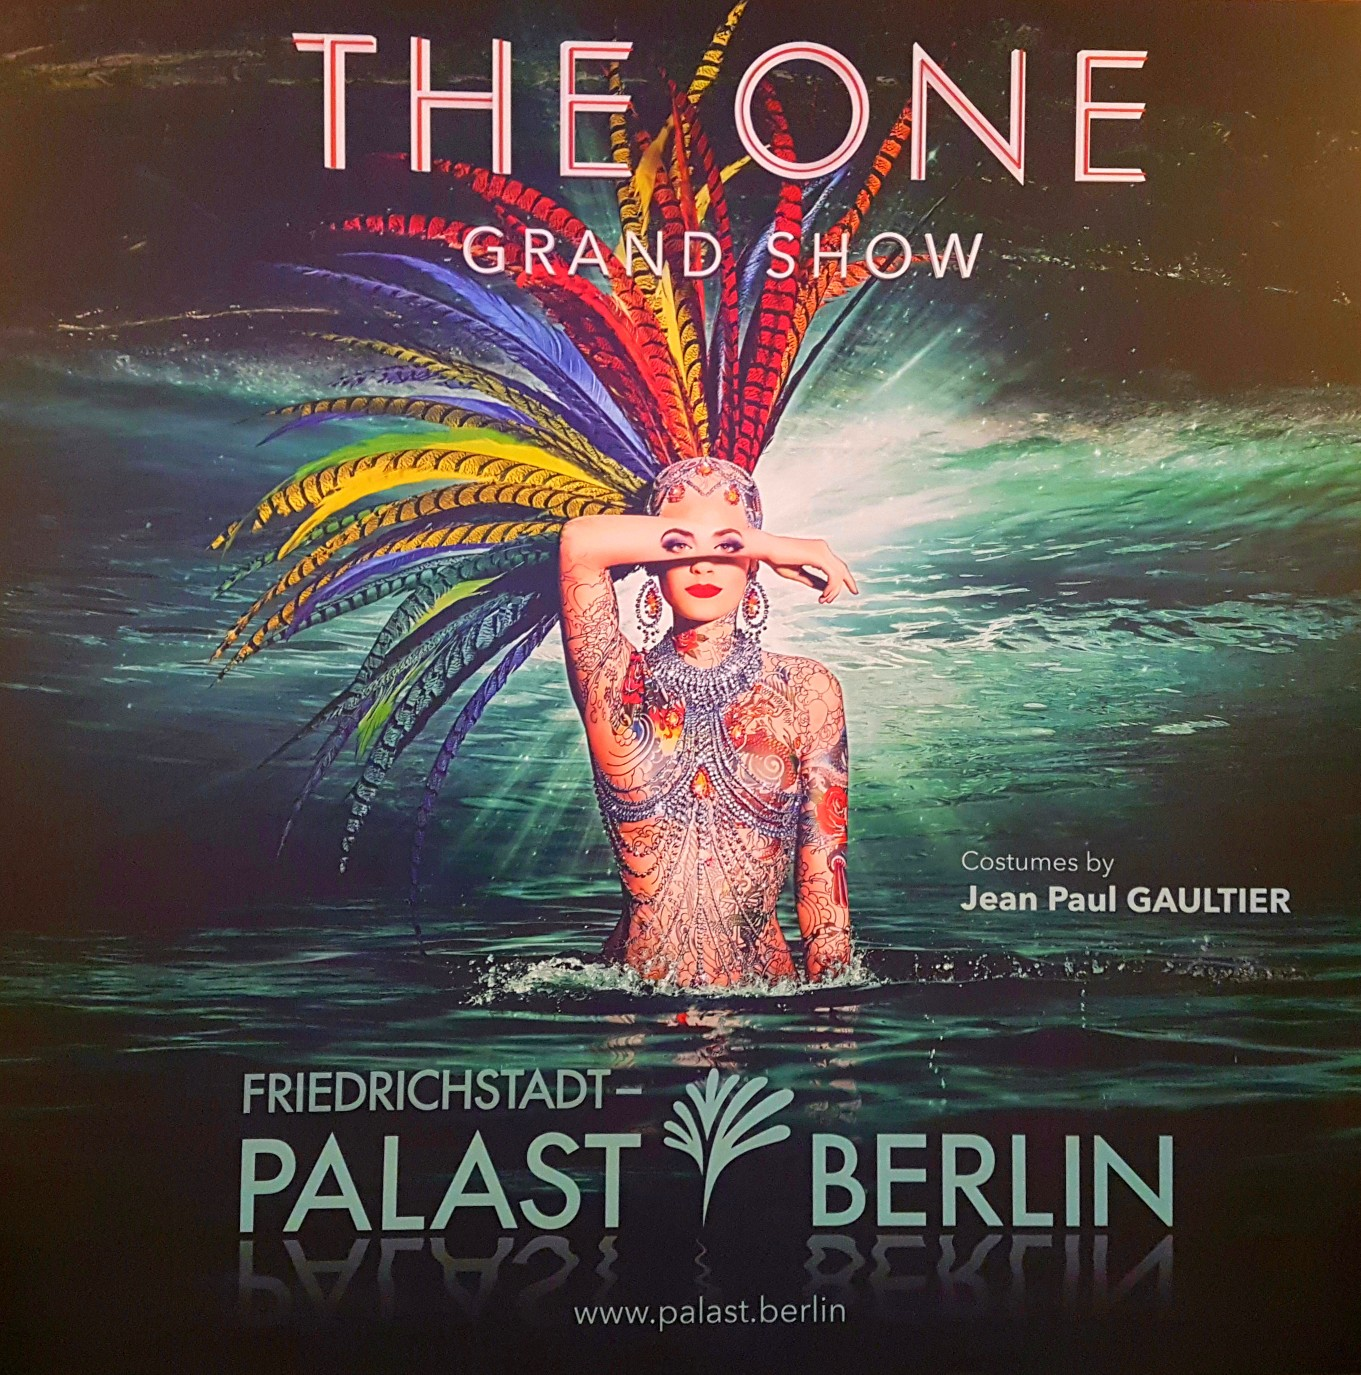 The One Grand Show in Berlin